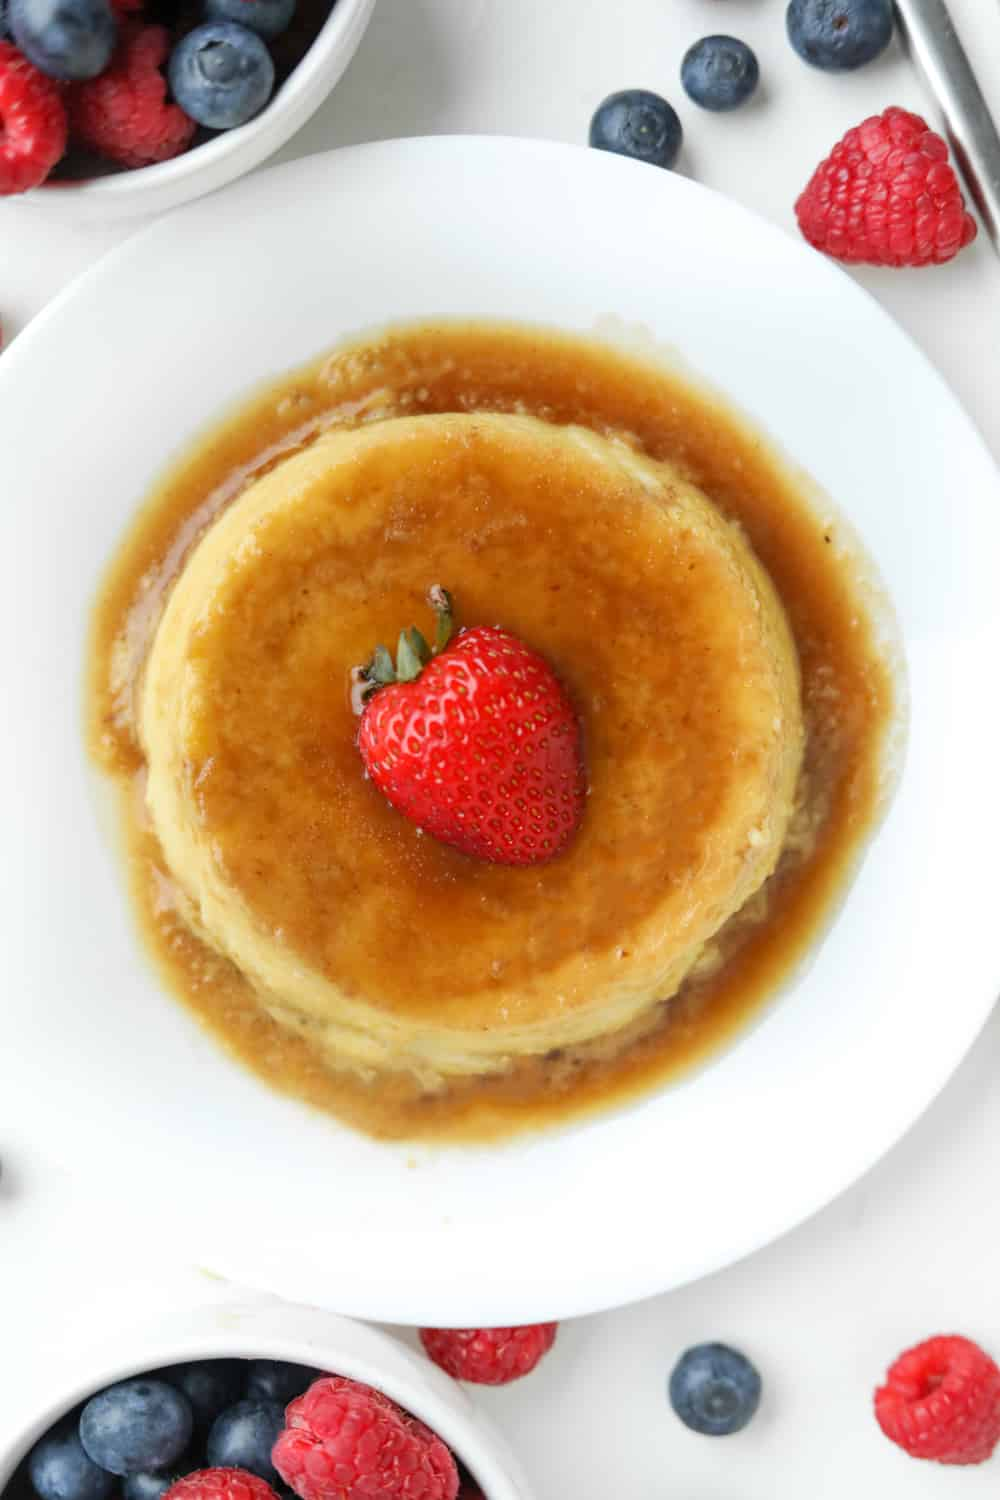 A piece of flan on a white plate set on a white table with berries all around it.